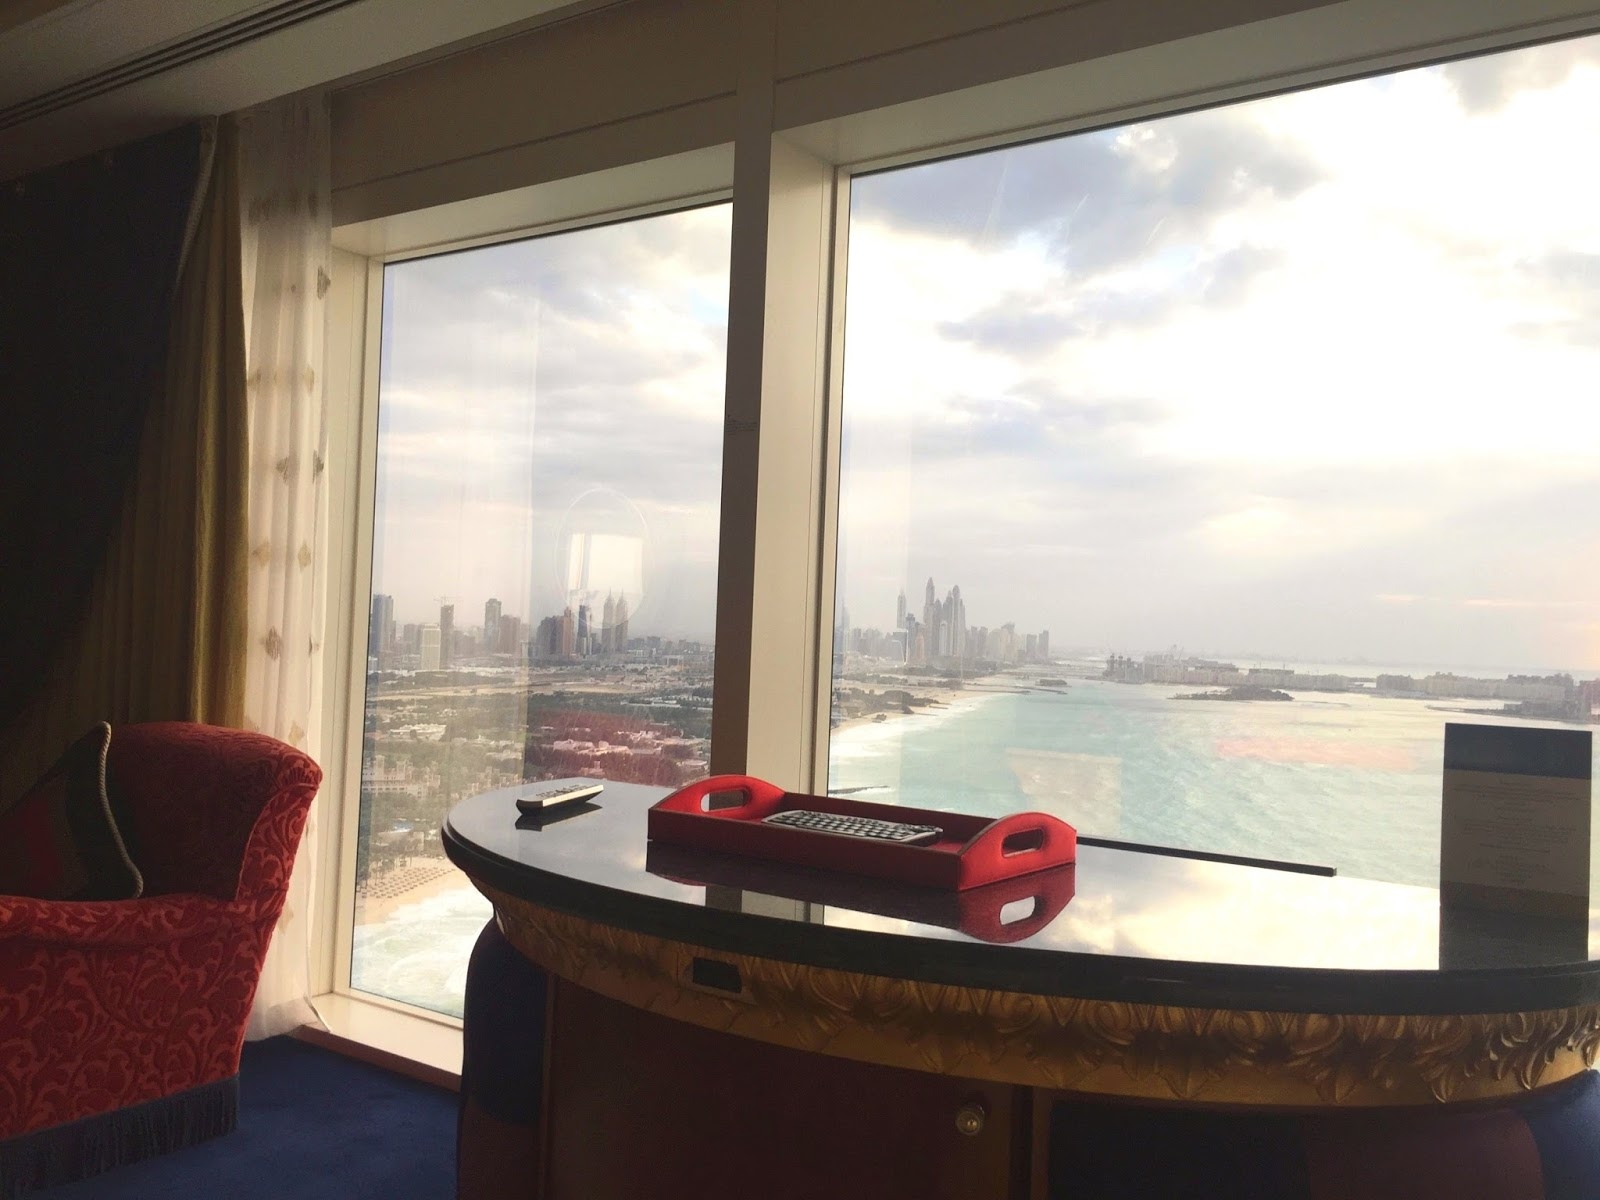 Burj Al Arab Sea View - Suite - Best Luxury Hotel in Dubai